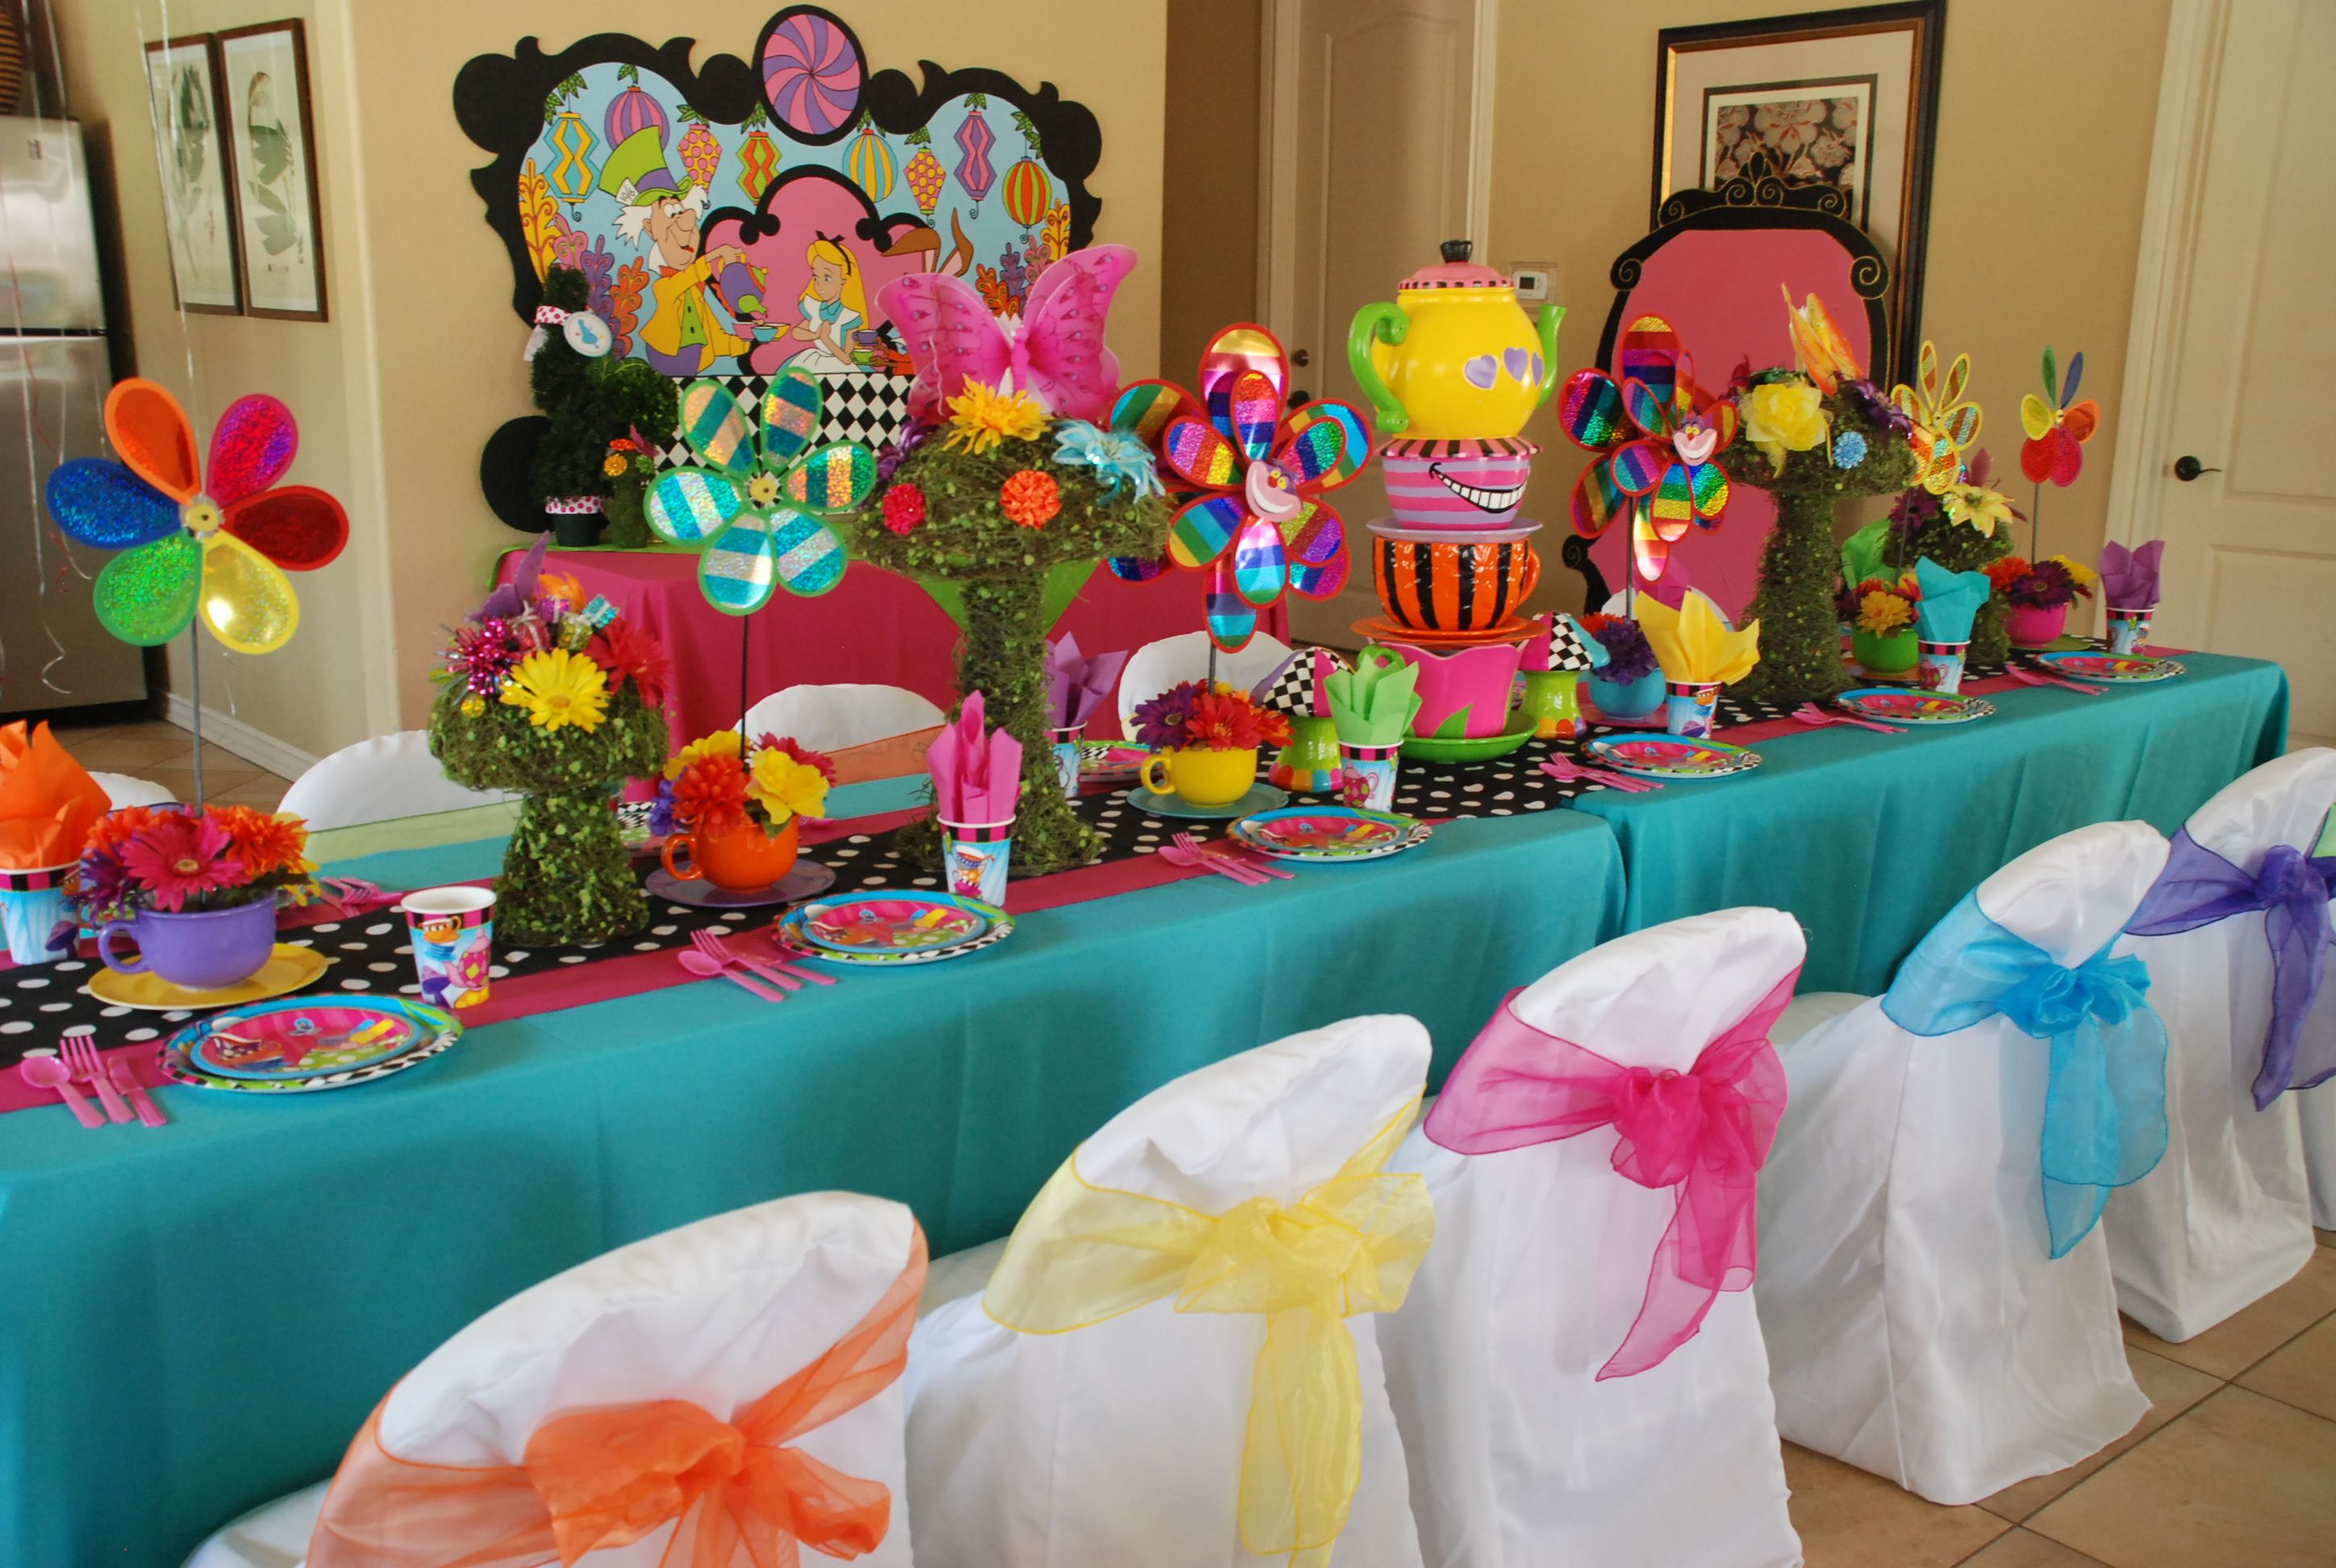 Wonderland theme Mad Hatter party table designed by: WONDERLAND PARTY PROPS. See us on Facebook for prop rental and decorating services.